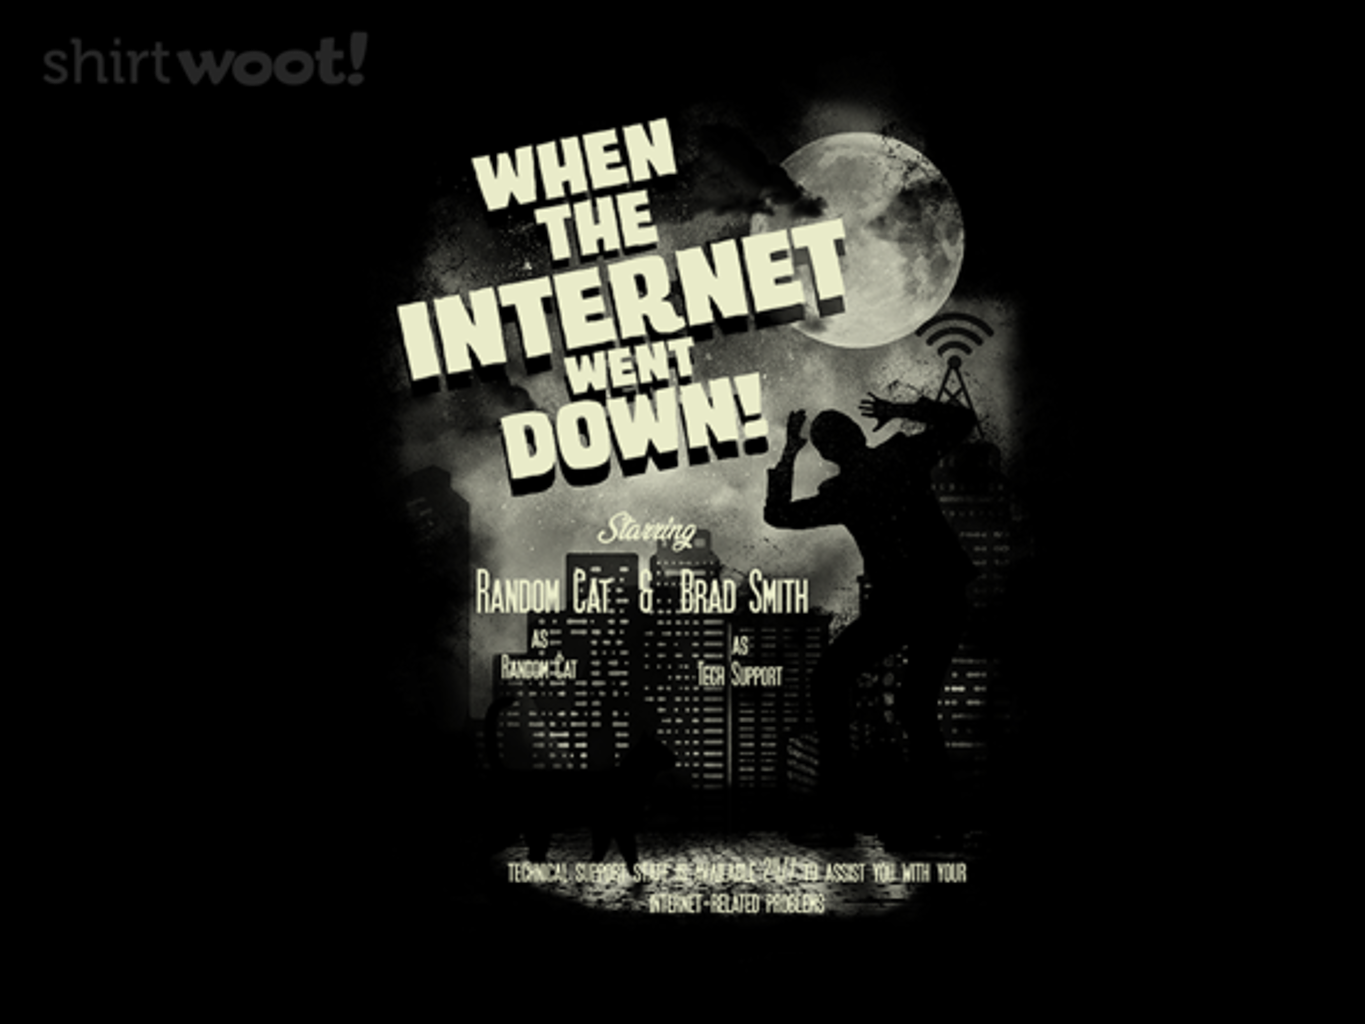 Woot!: The Internet Went Down